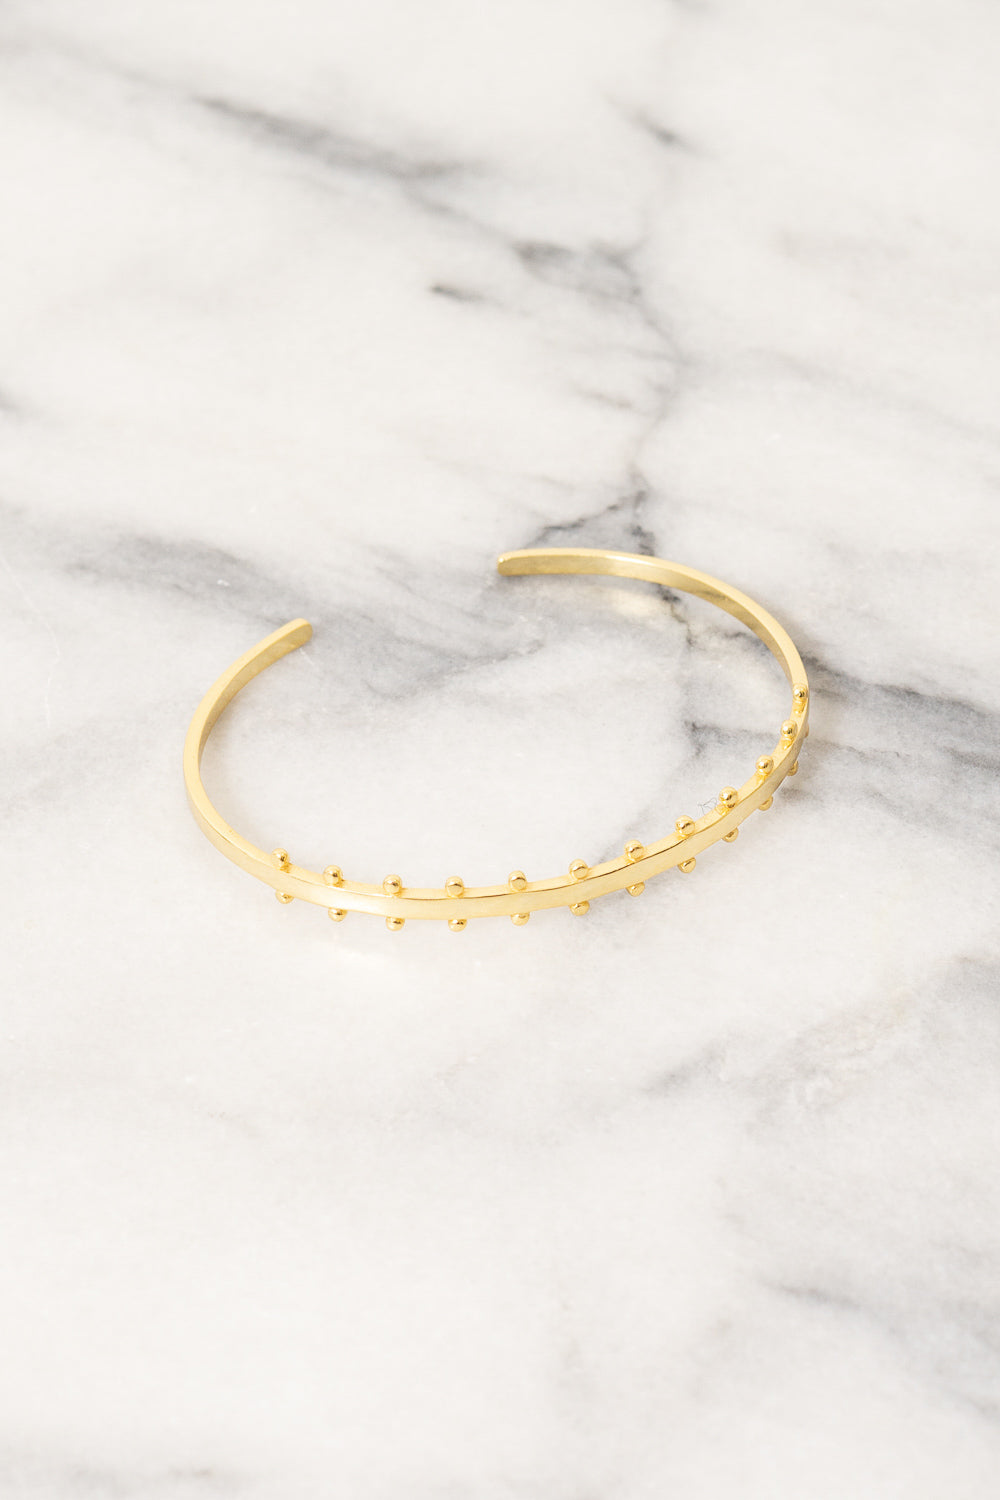 vermeil gold cuff bracelet with studs by Janna Conner